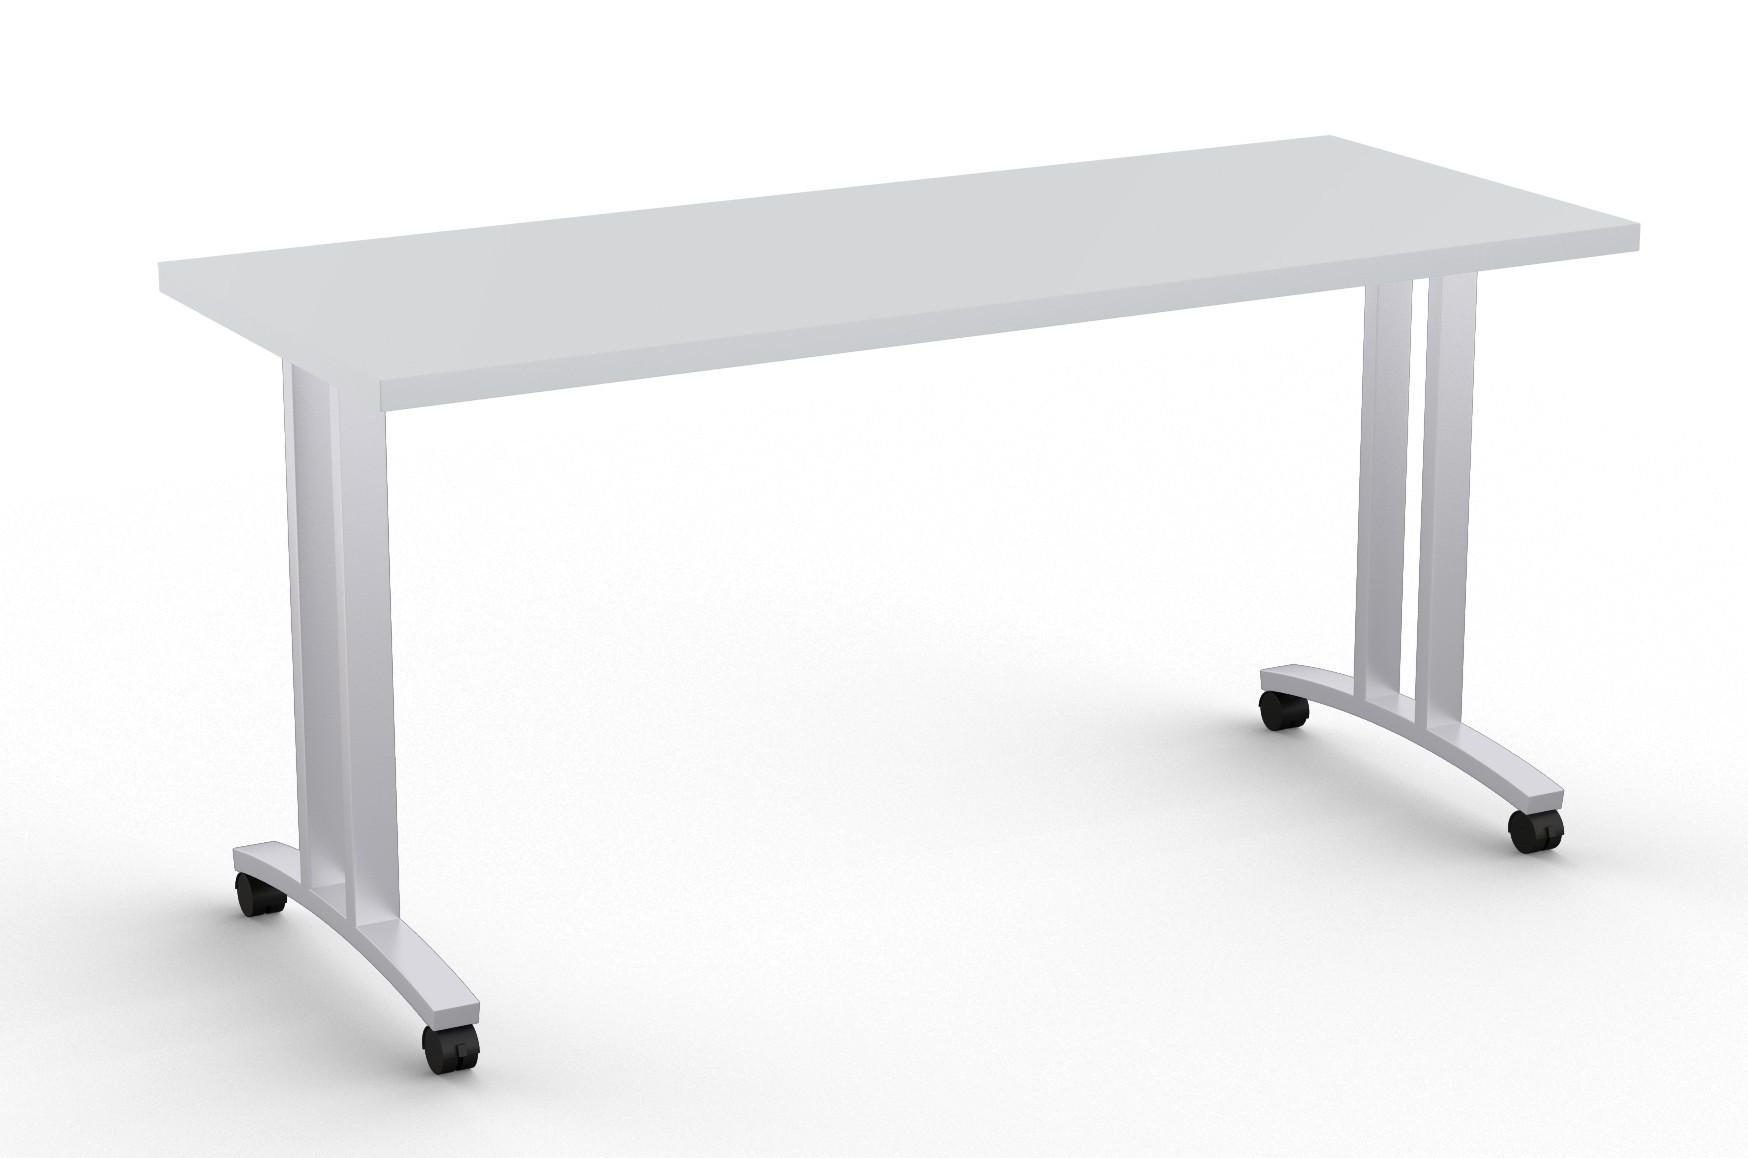 special-t structure t leg training table in light grey